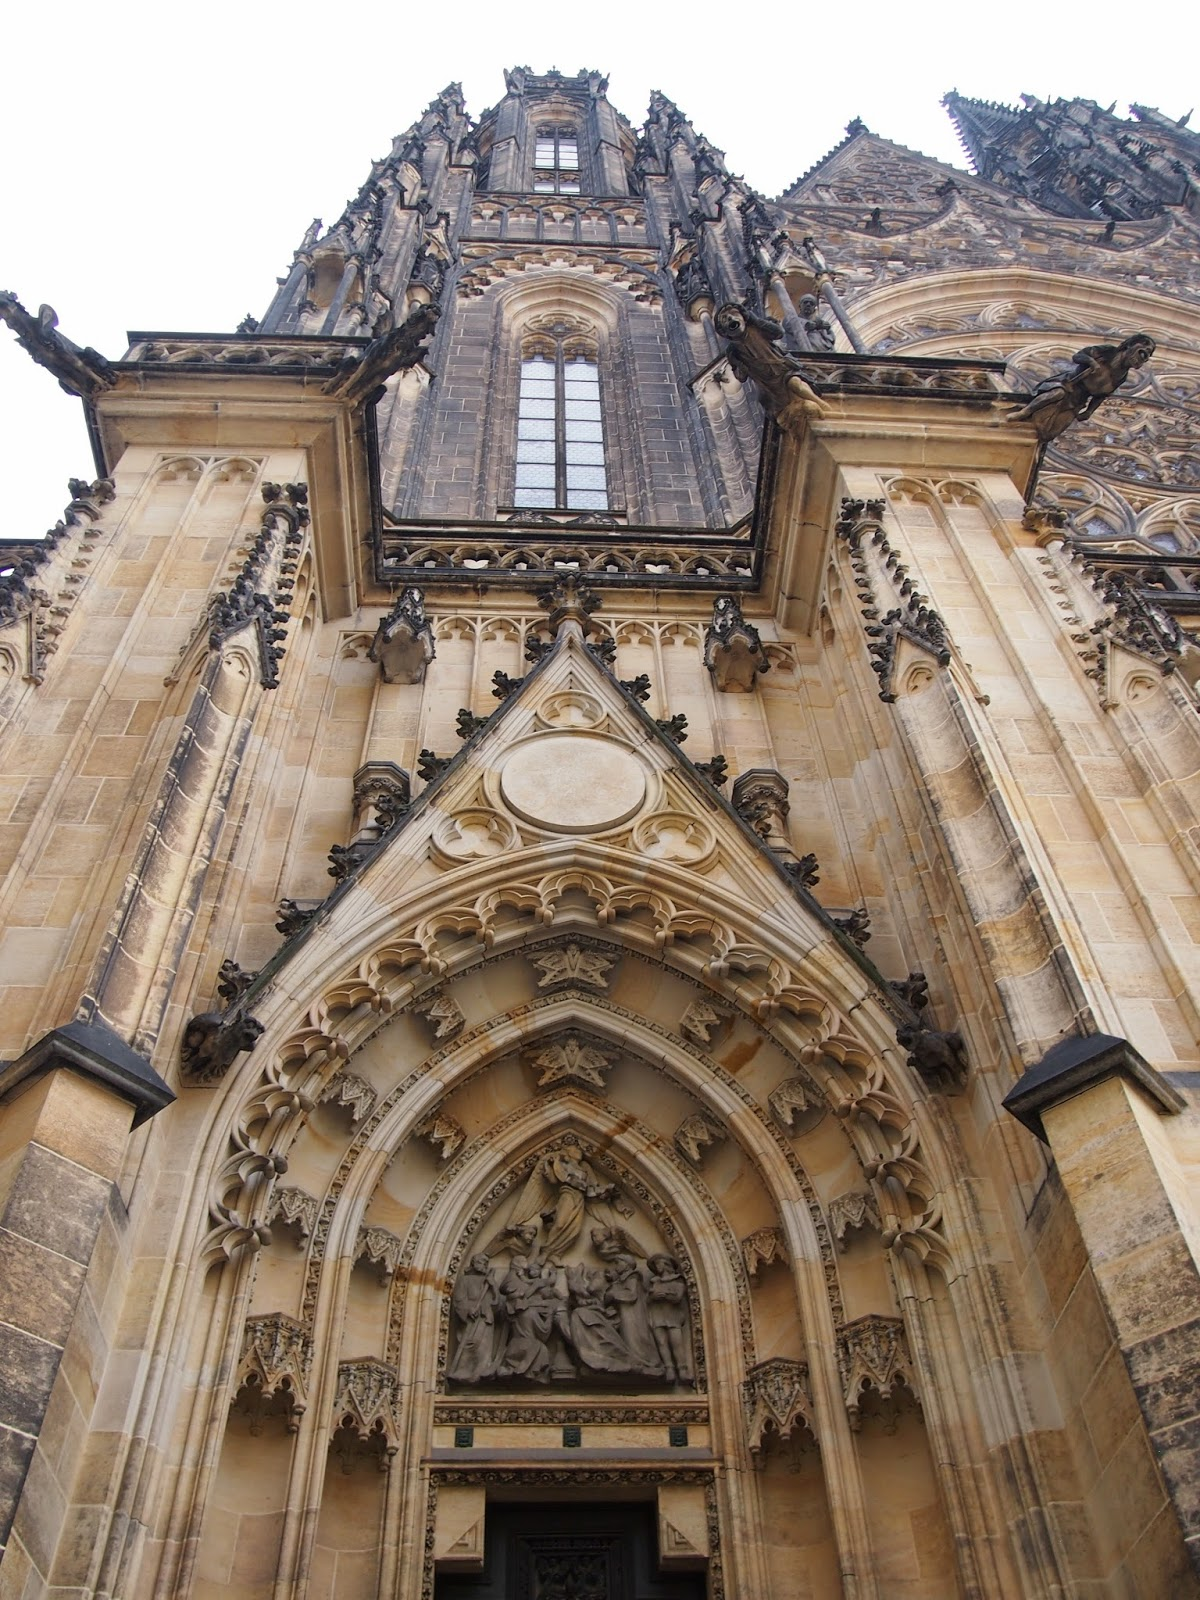 The outside of St. Vitus Cathedral